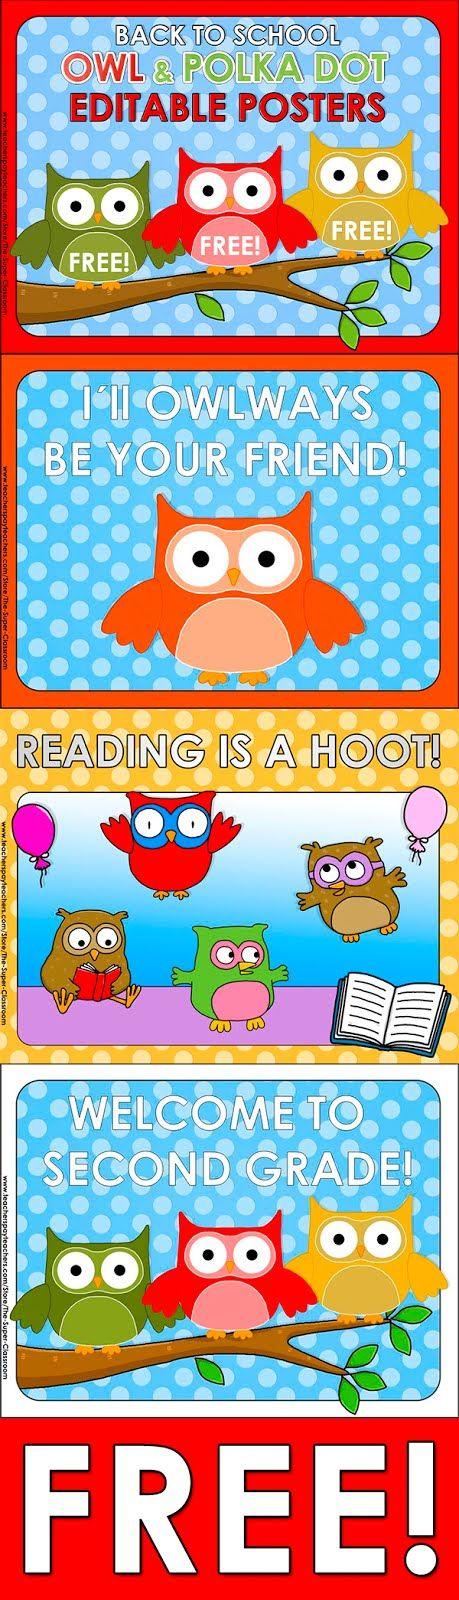 Classroom Decoration Freebies ~ Owl and polka dot free posters classroom freebies